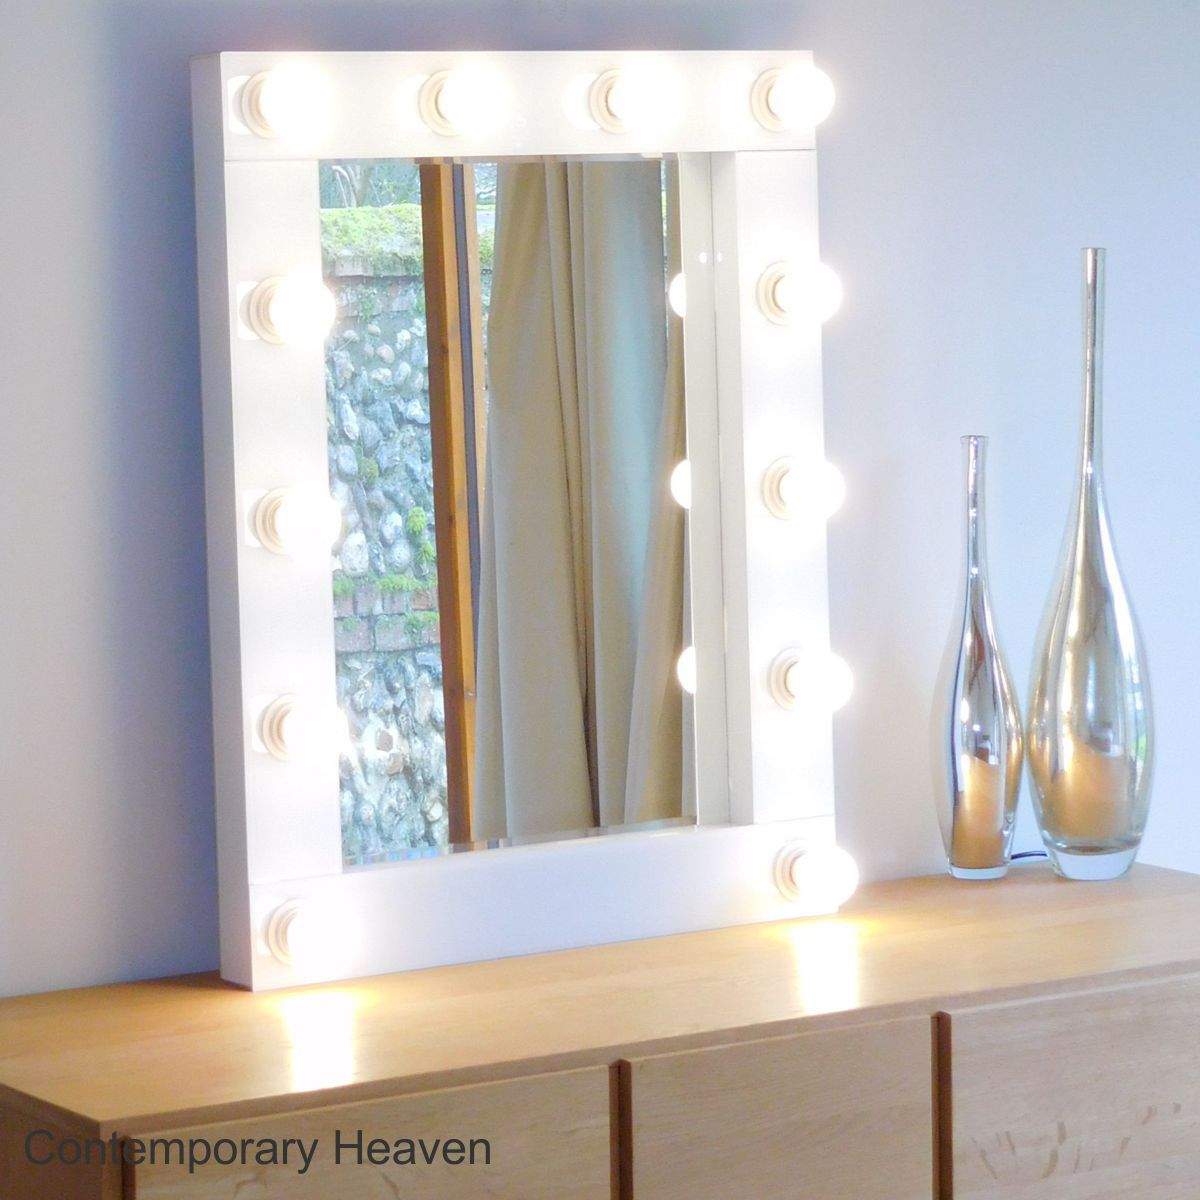 Gloss White Bevelled Hollywood Wall Mirrors Size H80cm x W62cm